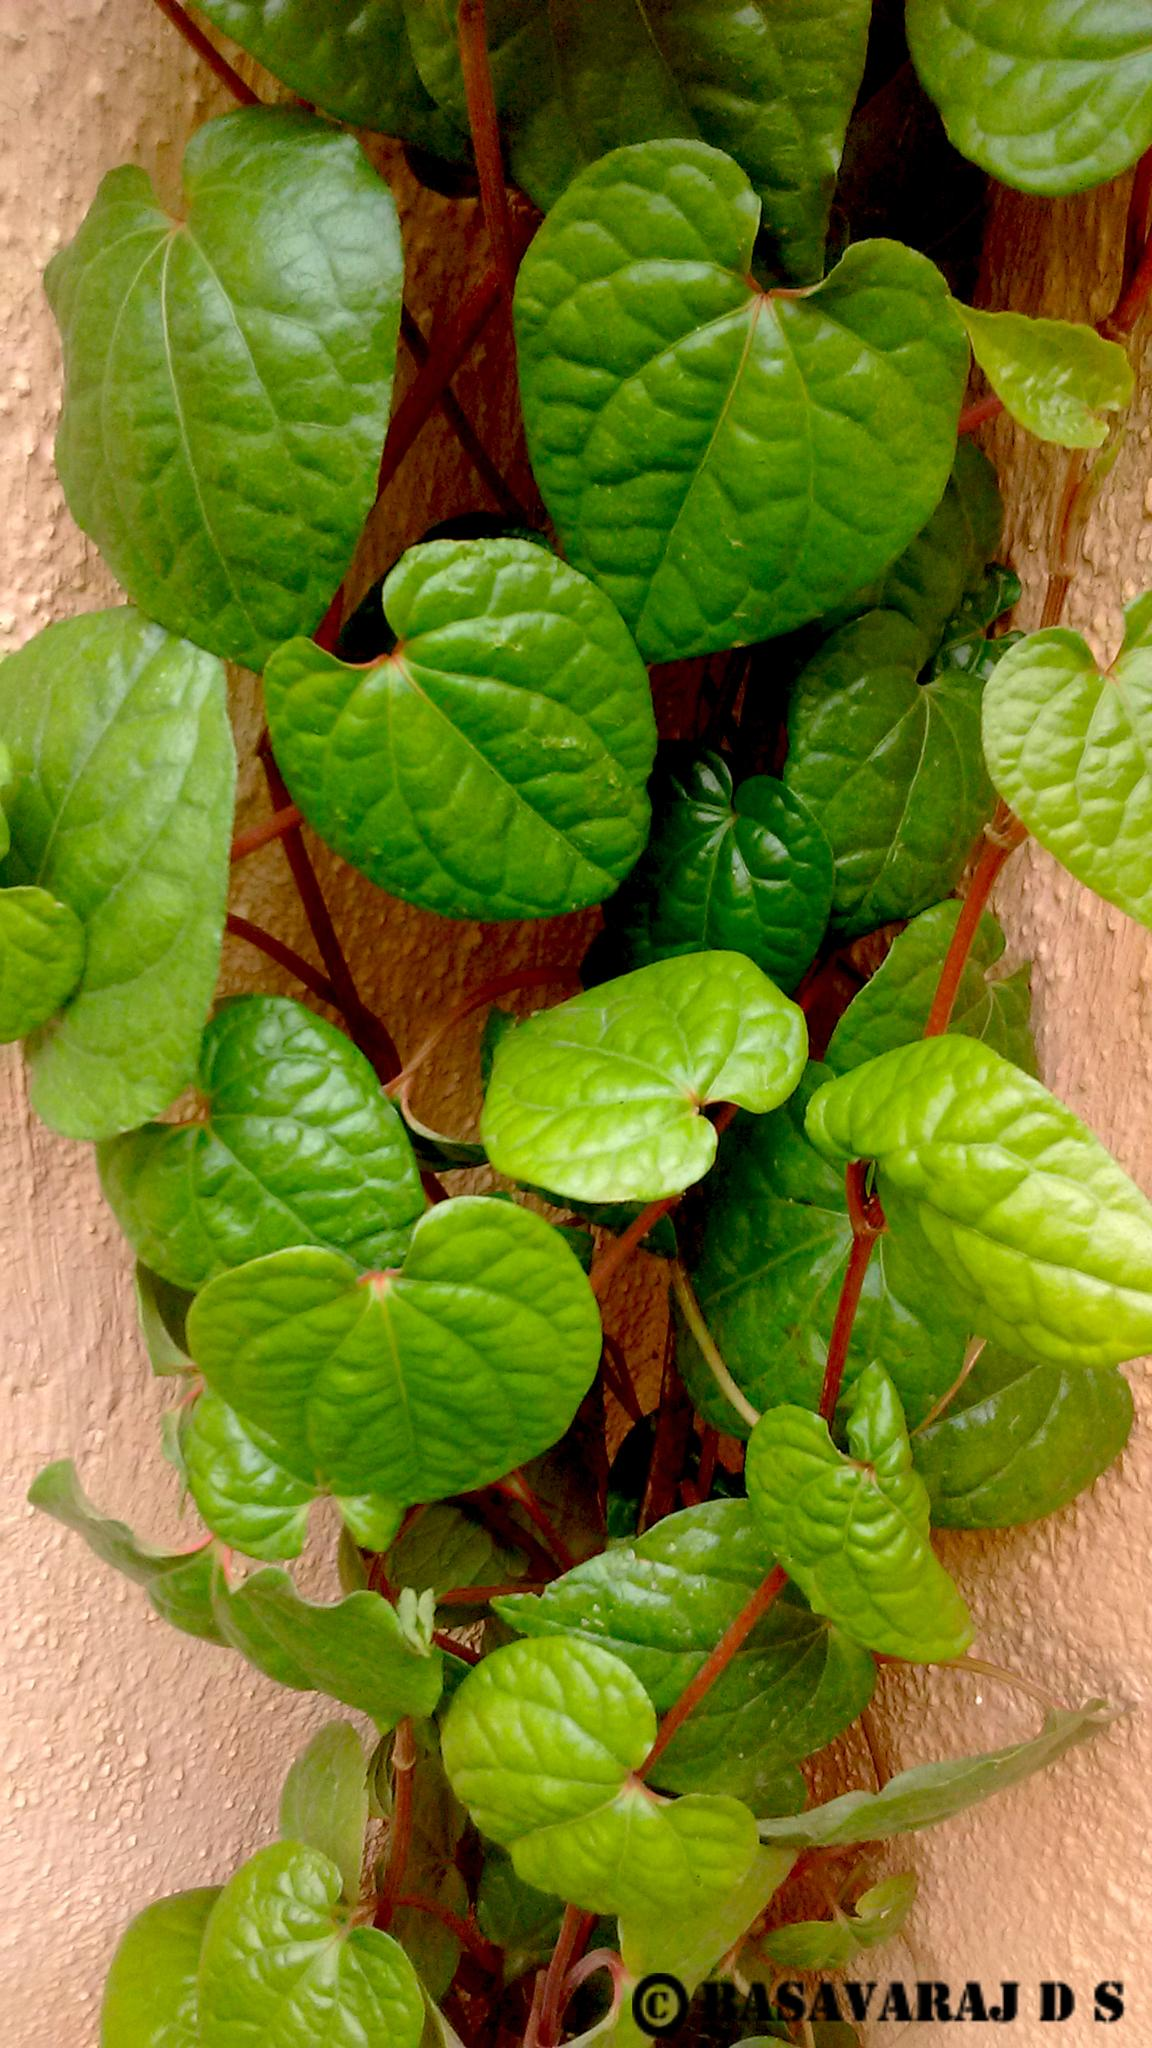 Leafs for spirutal works in india by Basavaraj D.S